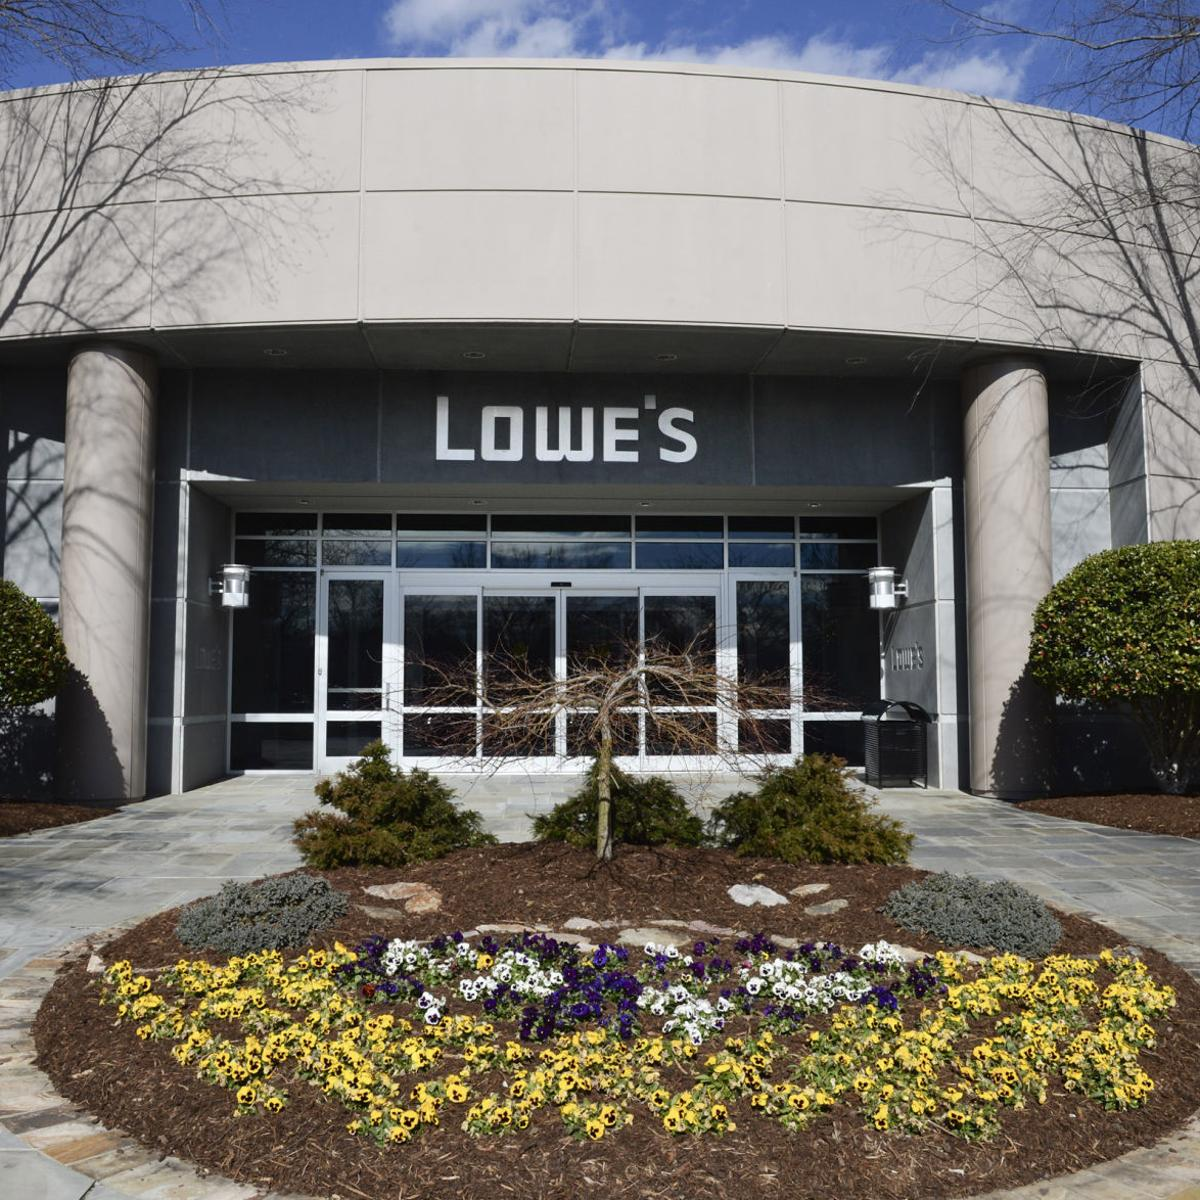 Lowe's restructuring shifts 680 jobs from Wilkesboro